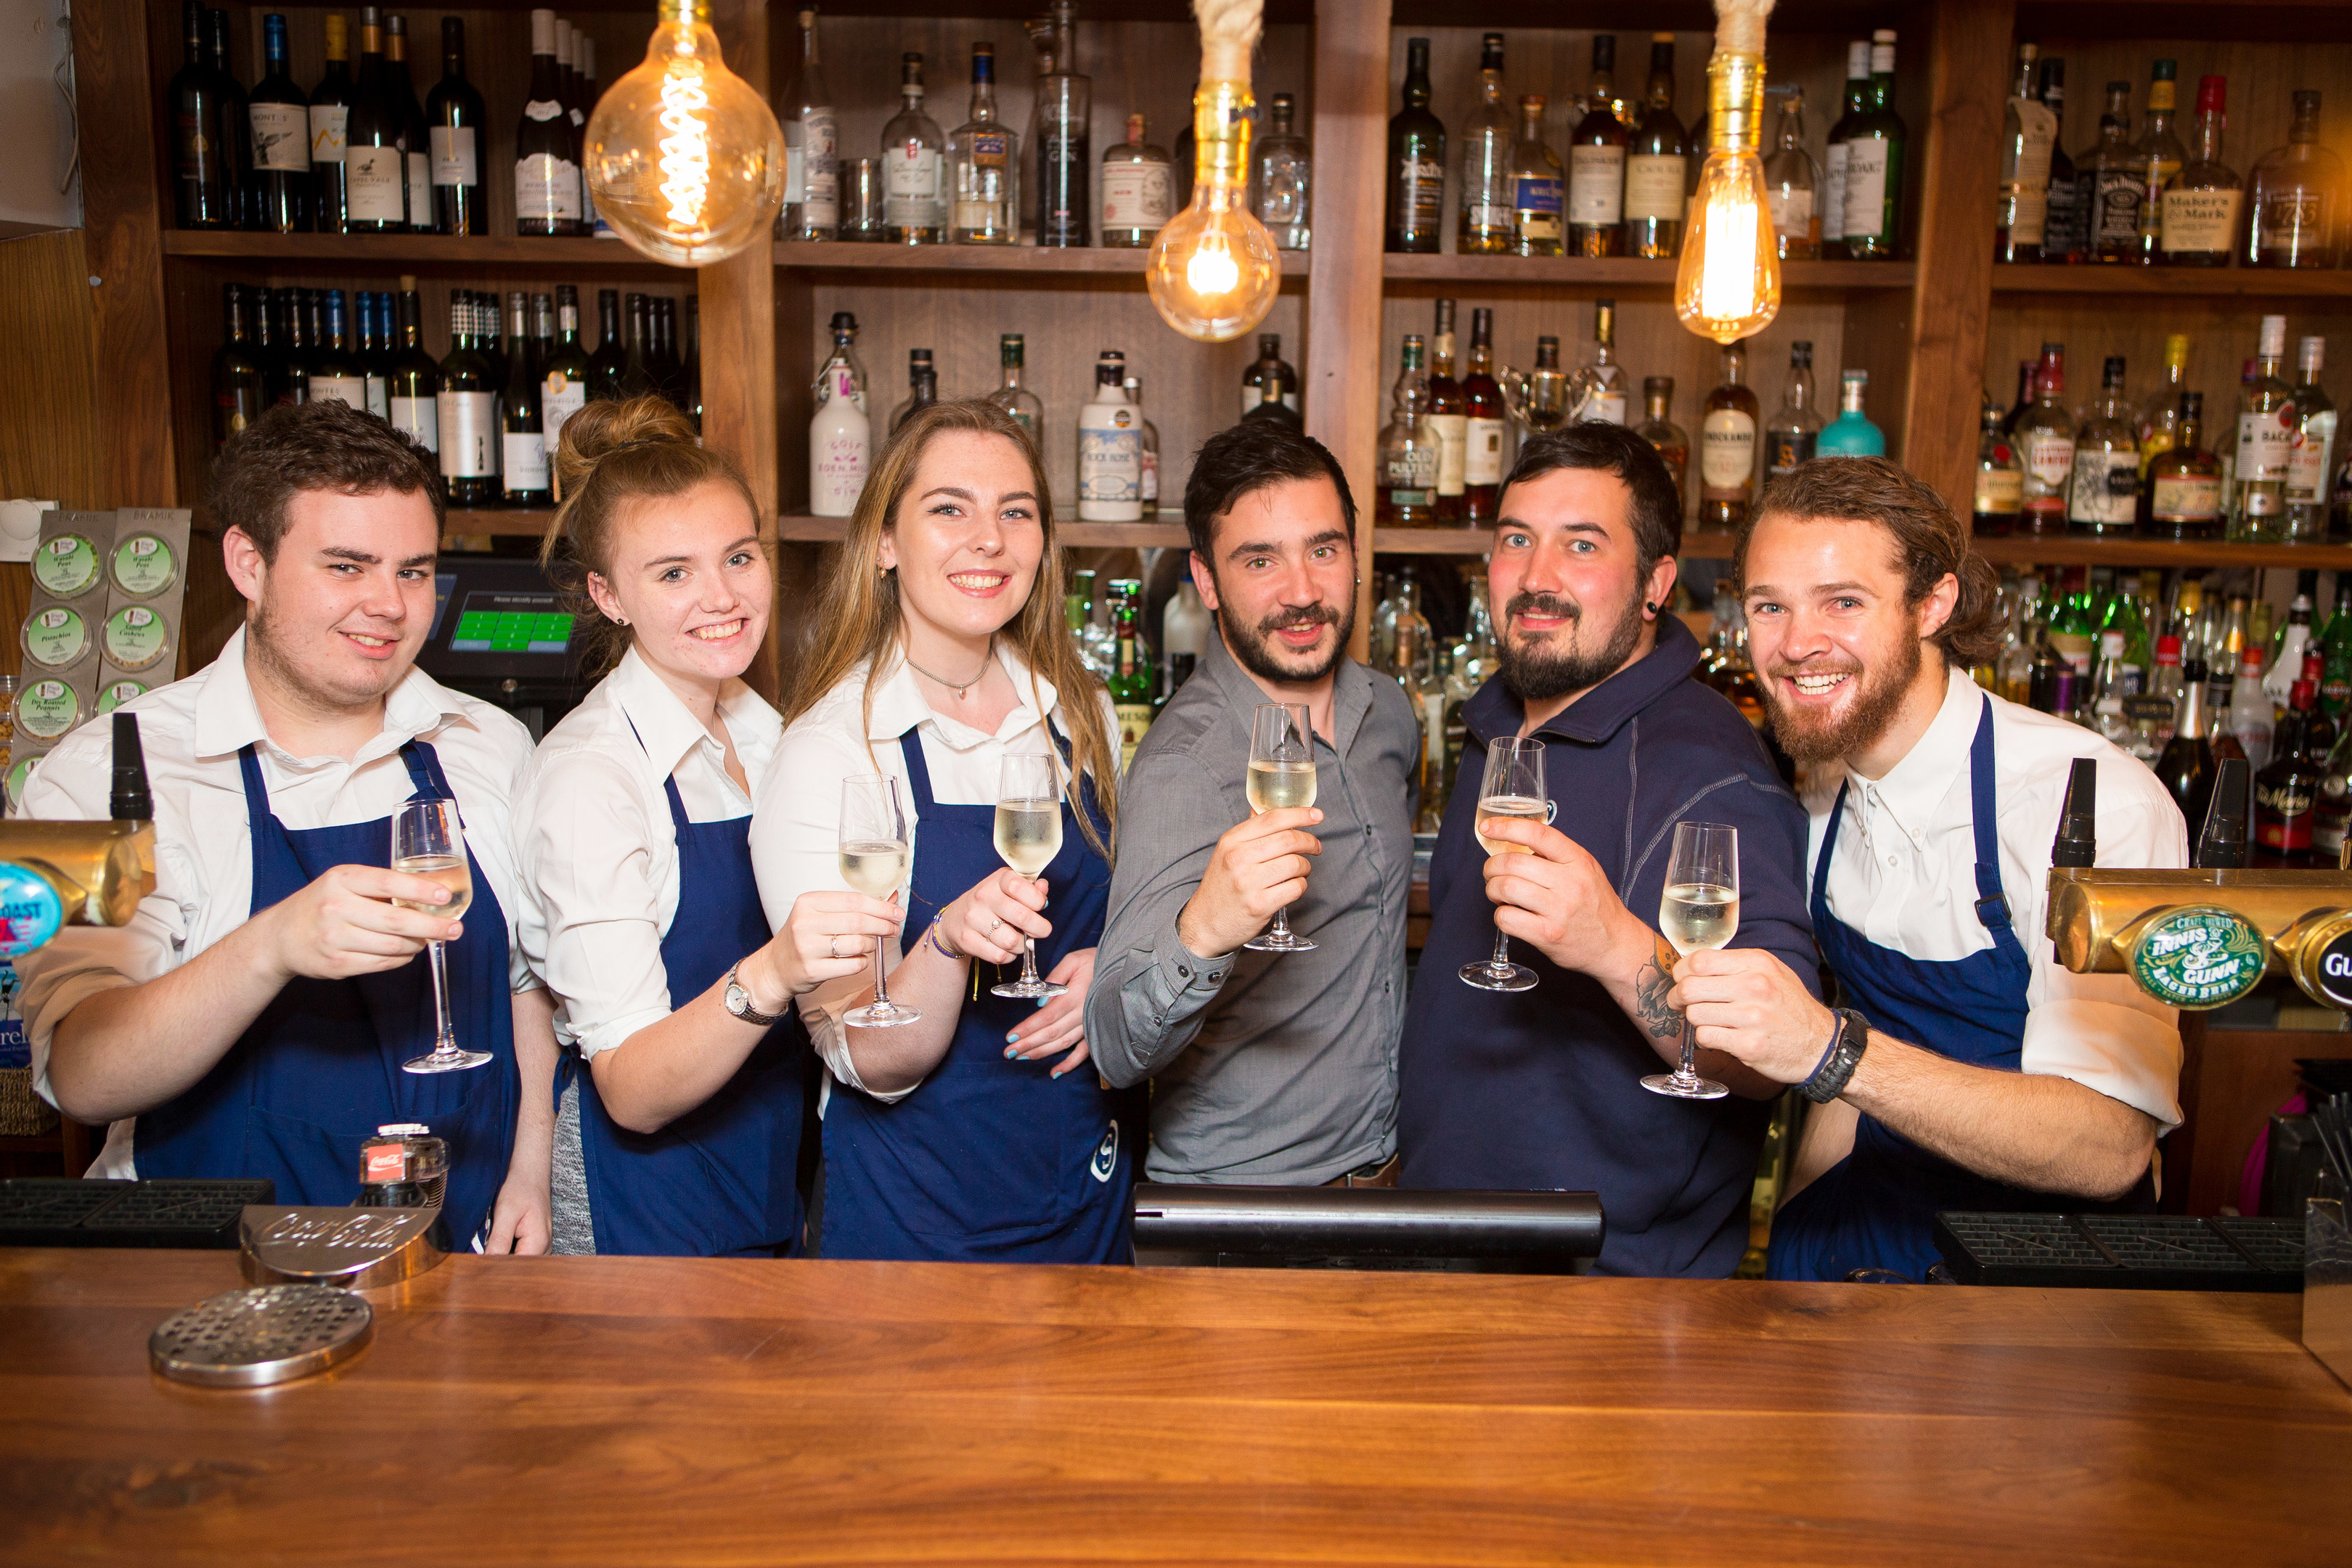 Staff members from Left: Sean Brown, Stephanie Guild, Sarah Salvesen, Jordan Dignan, Sian Linton and Tristan Riechel all celebrate the win with Prosecco.